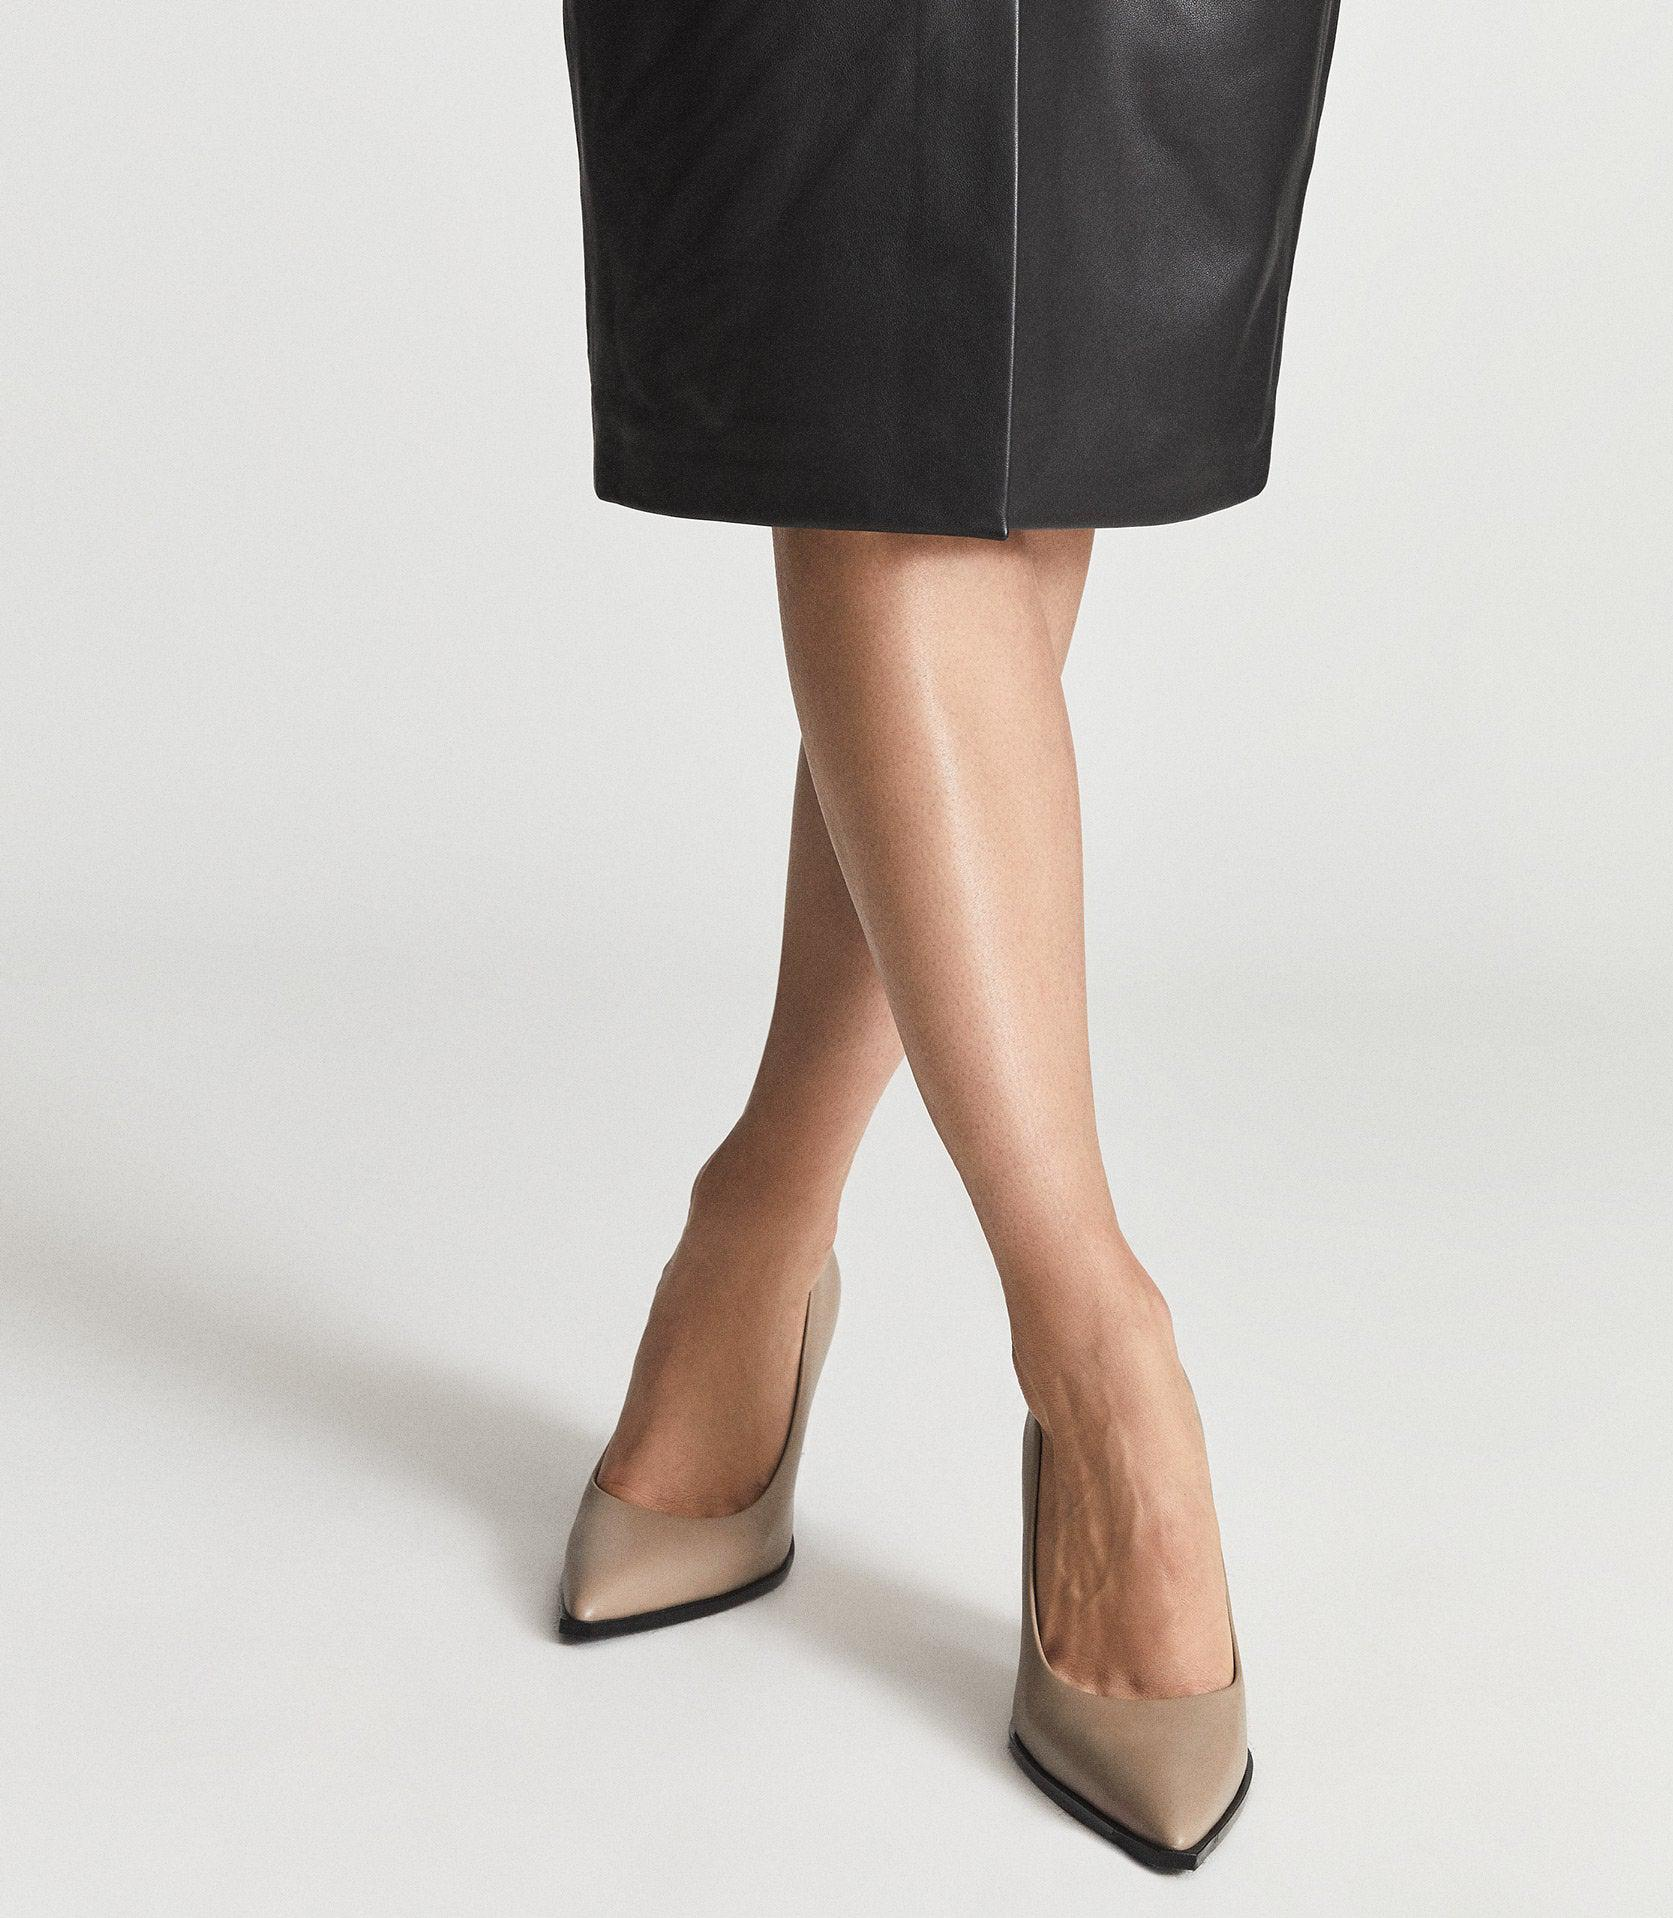 ADA COURT - LEATHER COURT SHOES 5